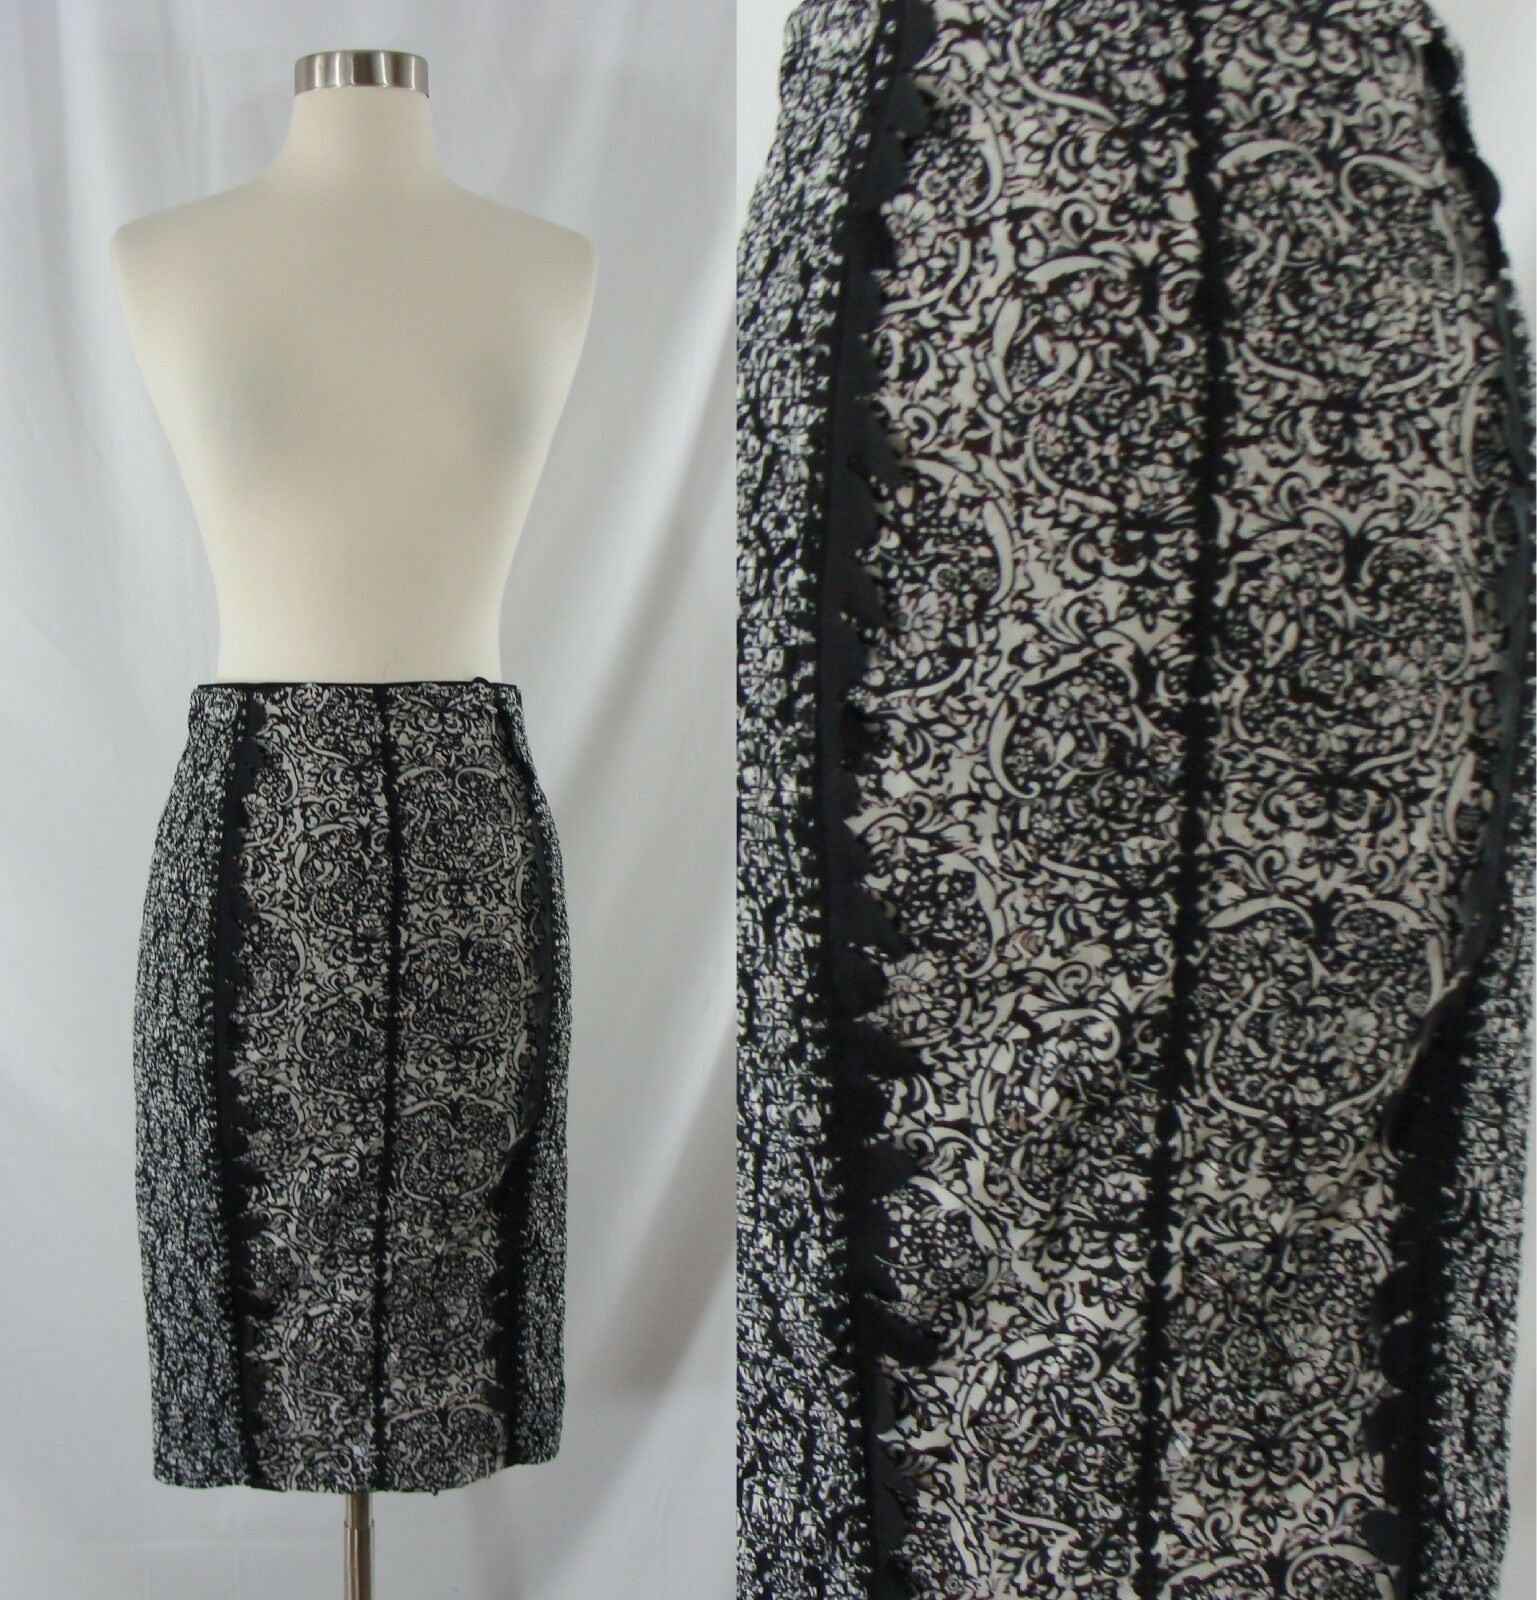 New Anthropologie 0 Beguile by Bryon Lars Cut Out Stretch Pencil Skirt NWT